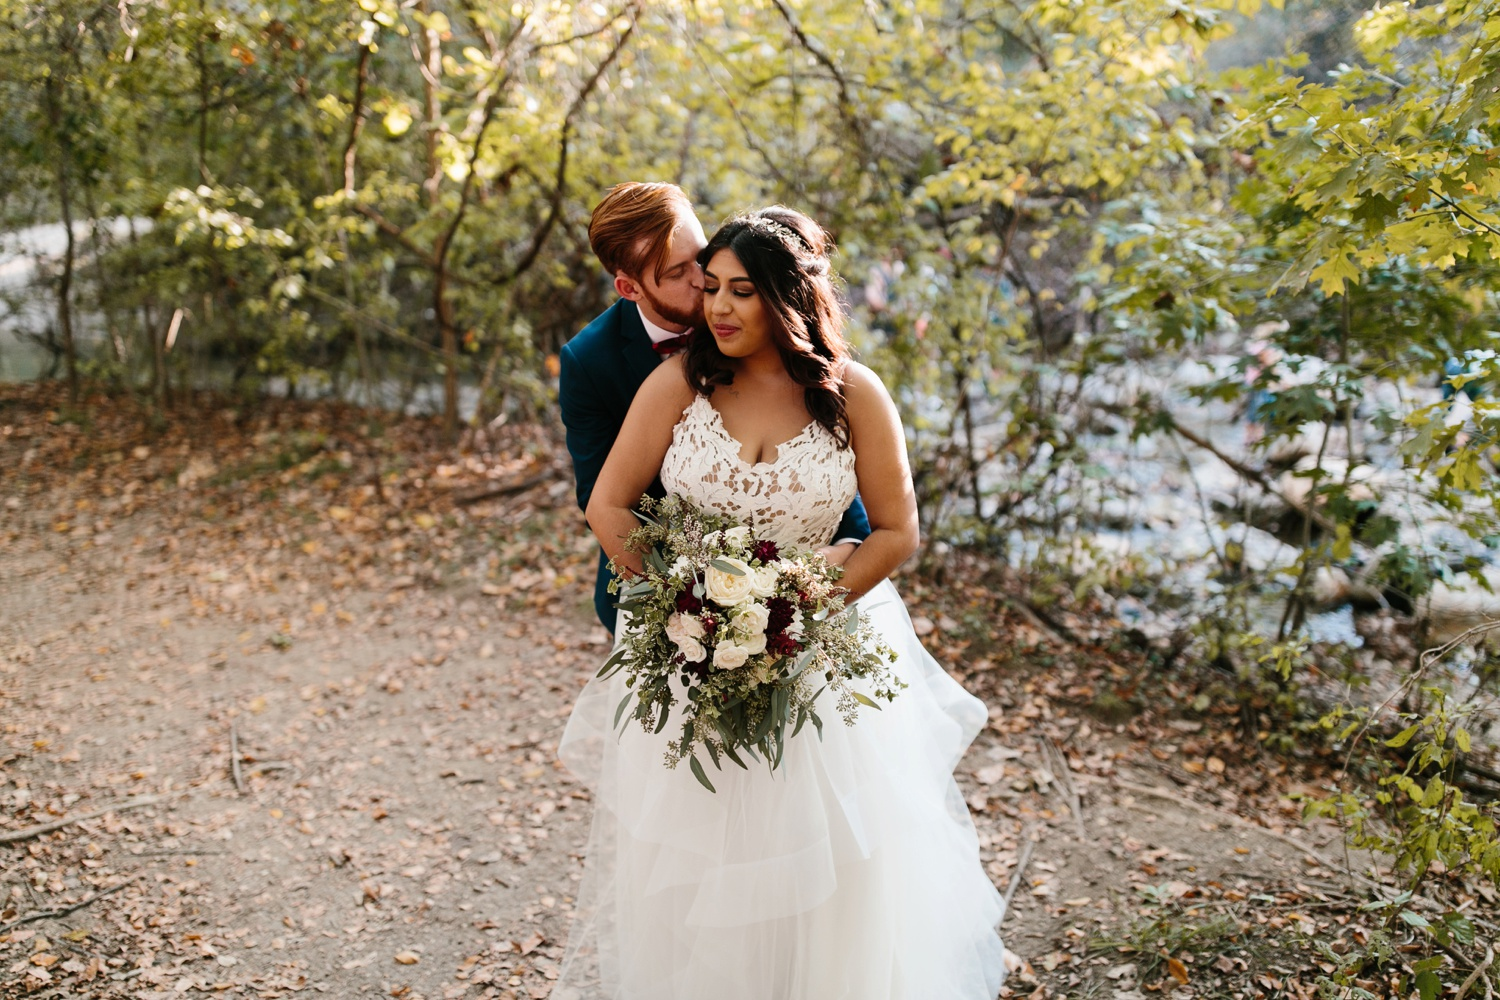 Grant + Lysette | a vibrant, deep burgundy and navy, and mixed metals wedding at Hidden Pines Chapel by North Texas Wedding Photographer Rachel Meagan Photography 192